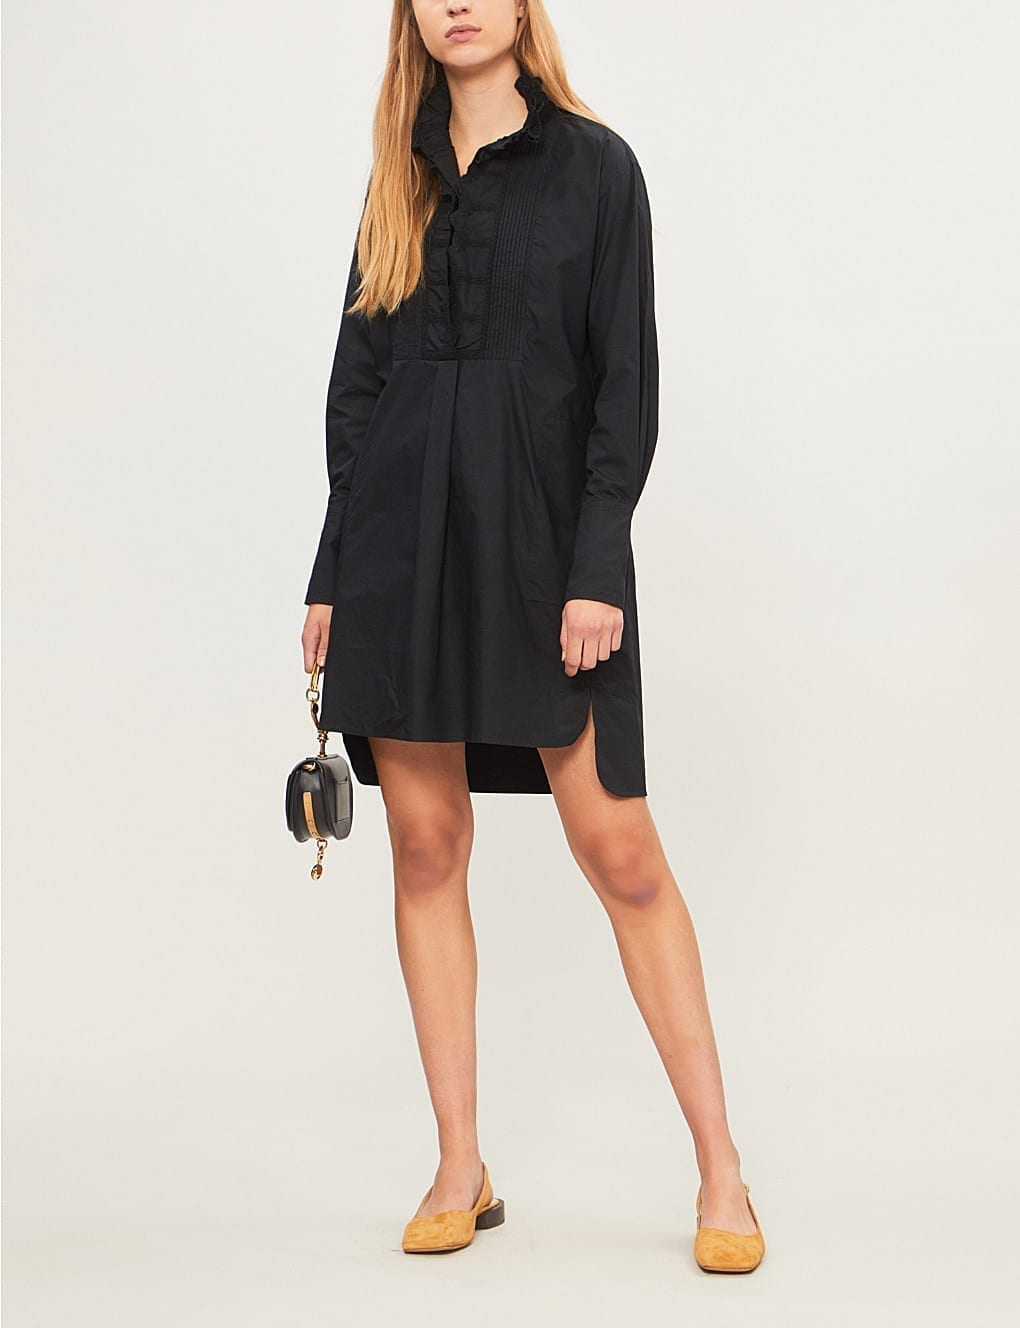 ISABEL MARANT ETOILE Milena Cotton Mini Black Dress